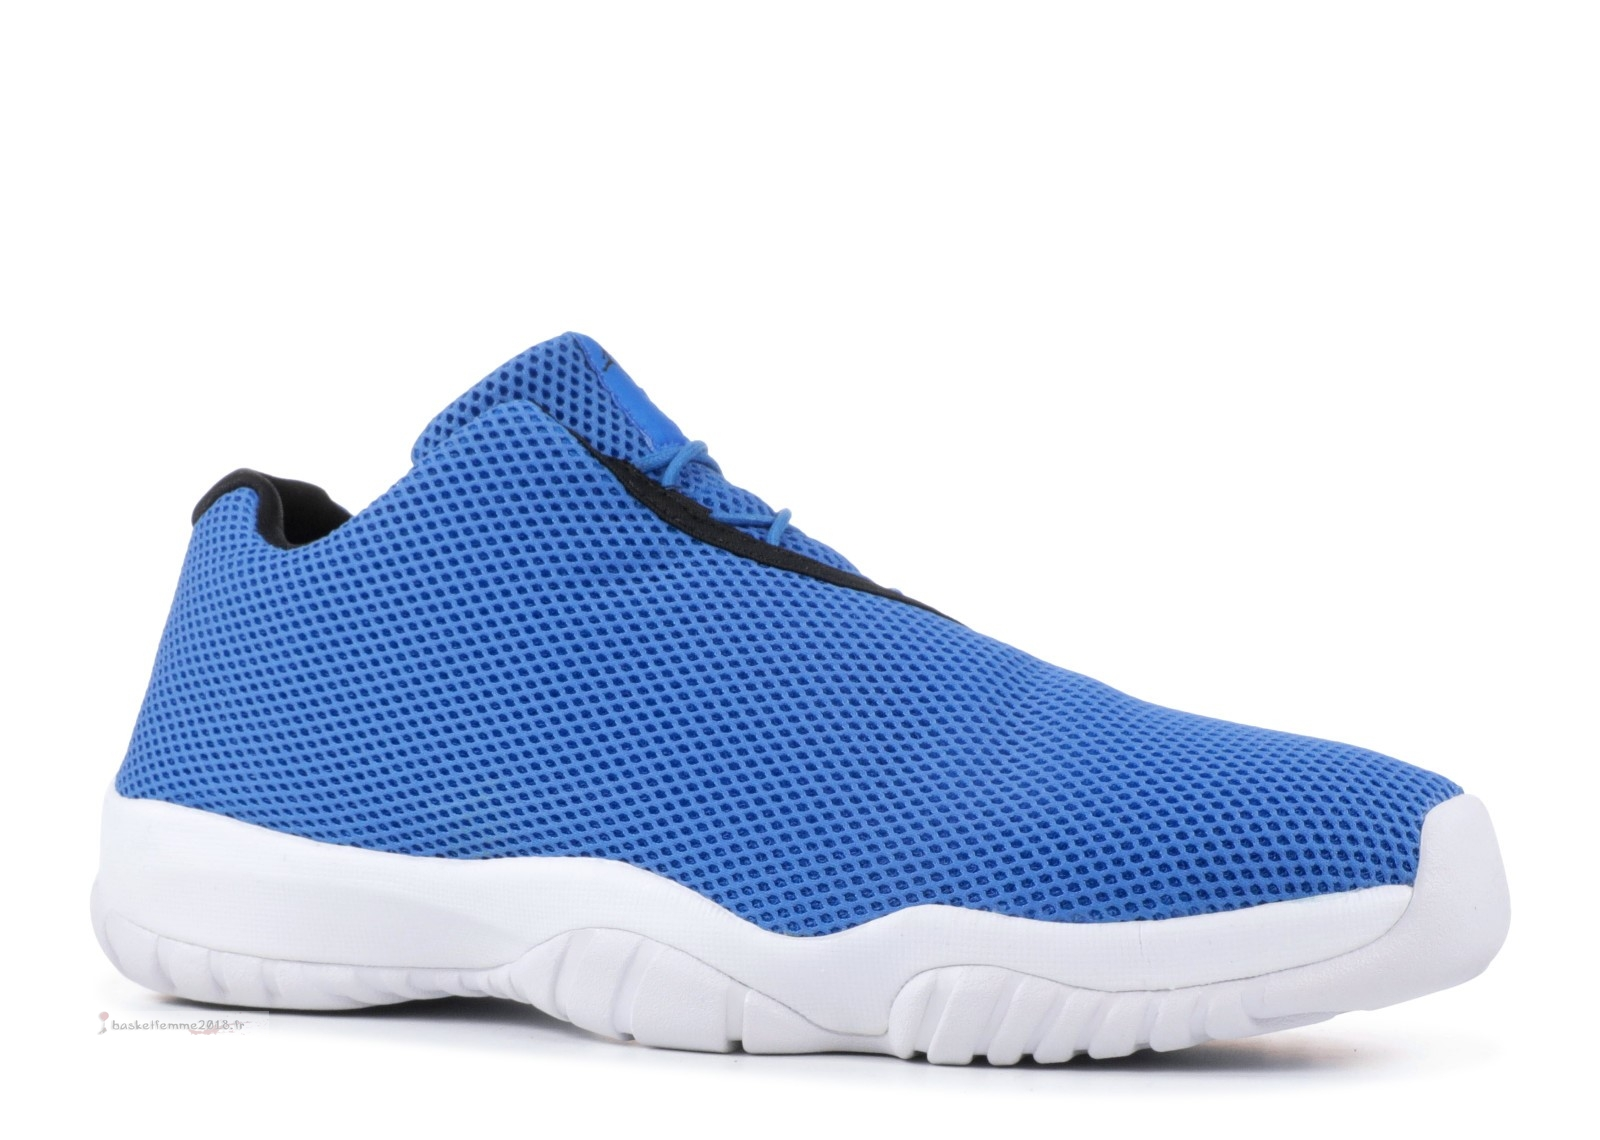 Air Jordan Future Low Bleu Blanc 4 (718948-400) Chaussure de Basket